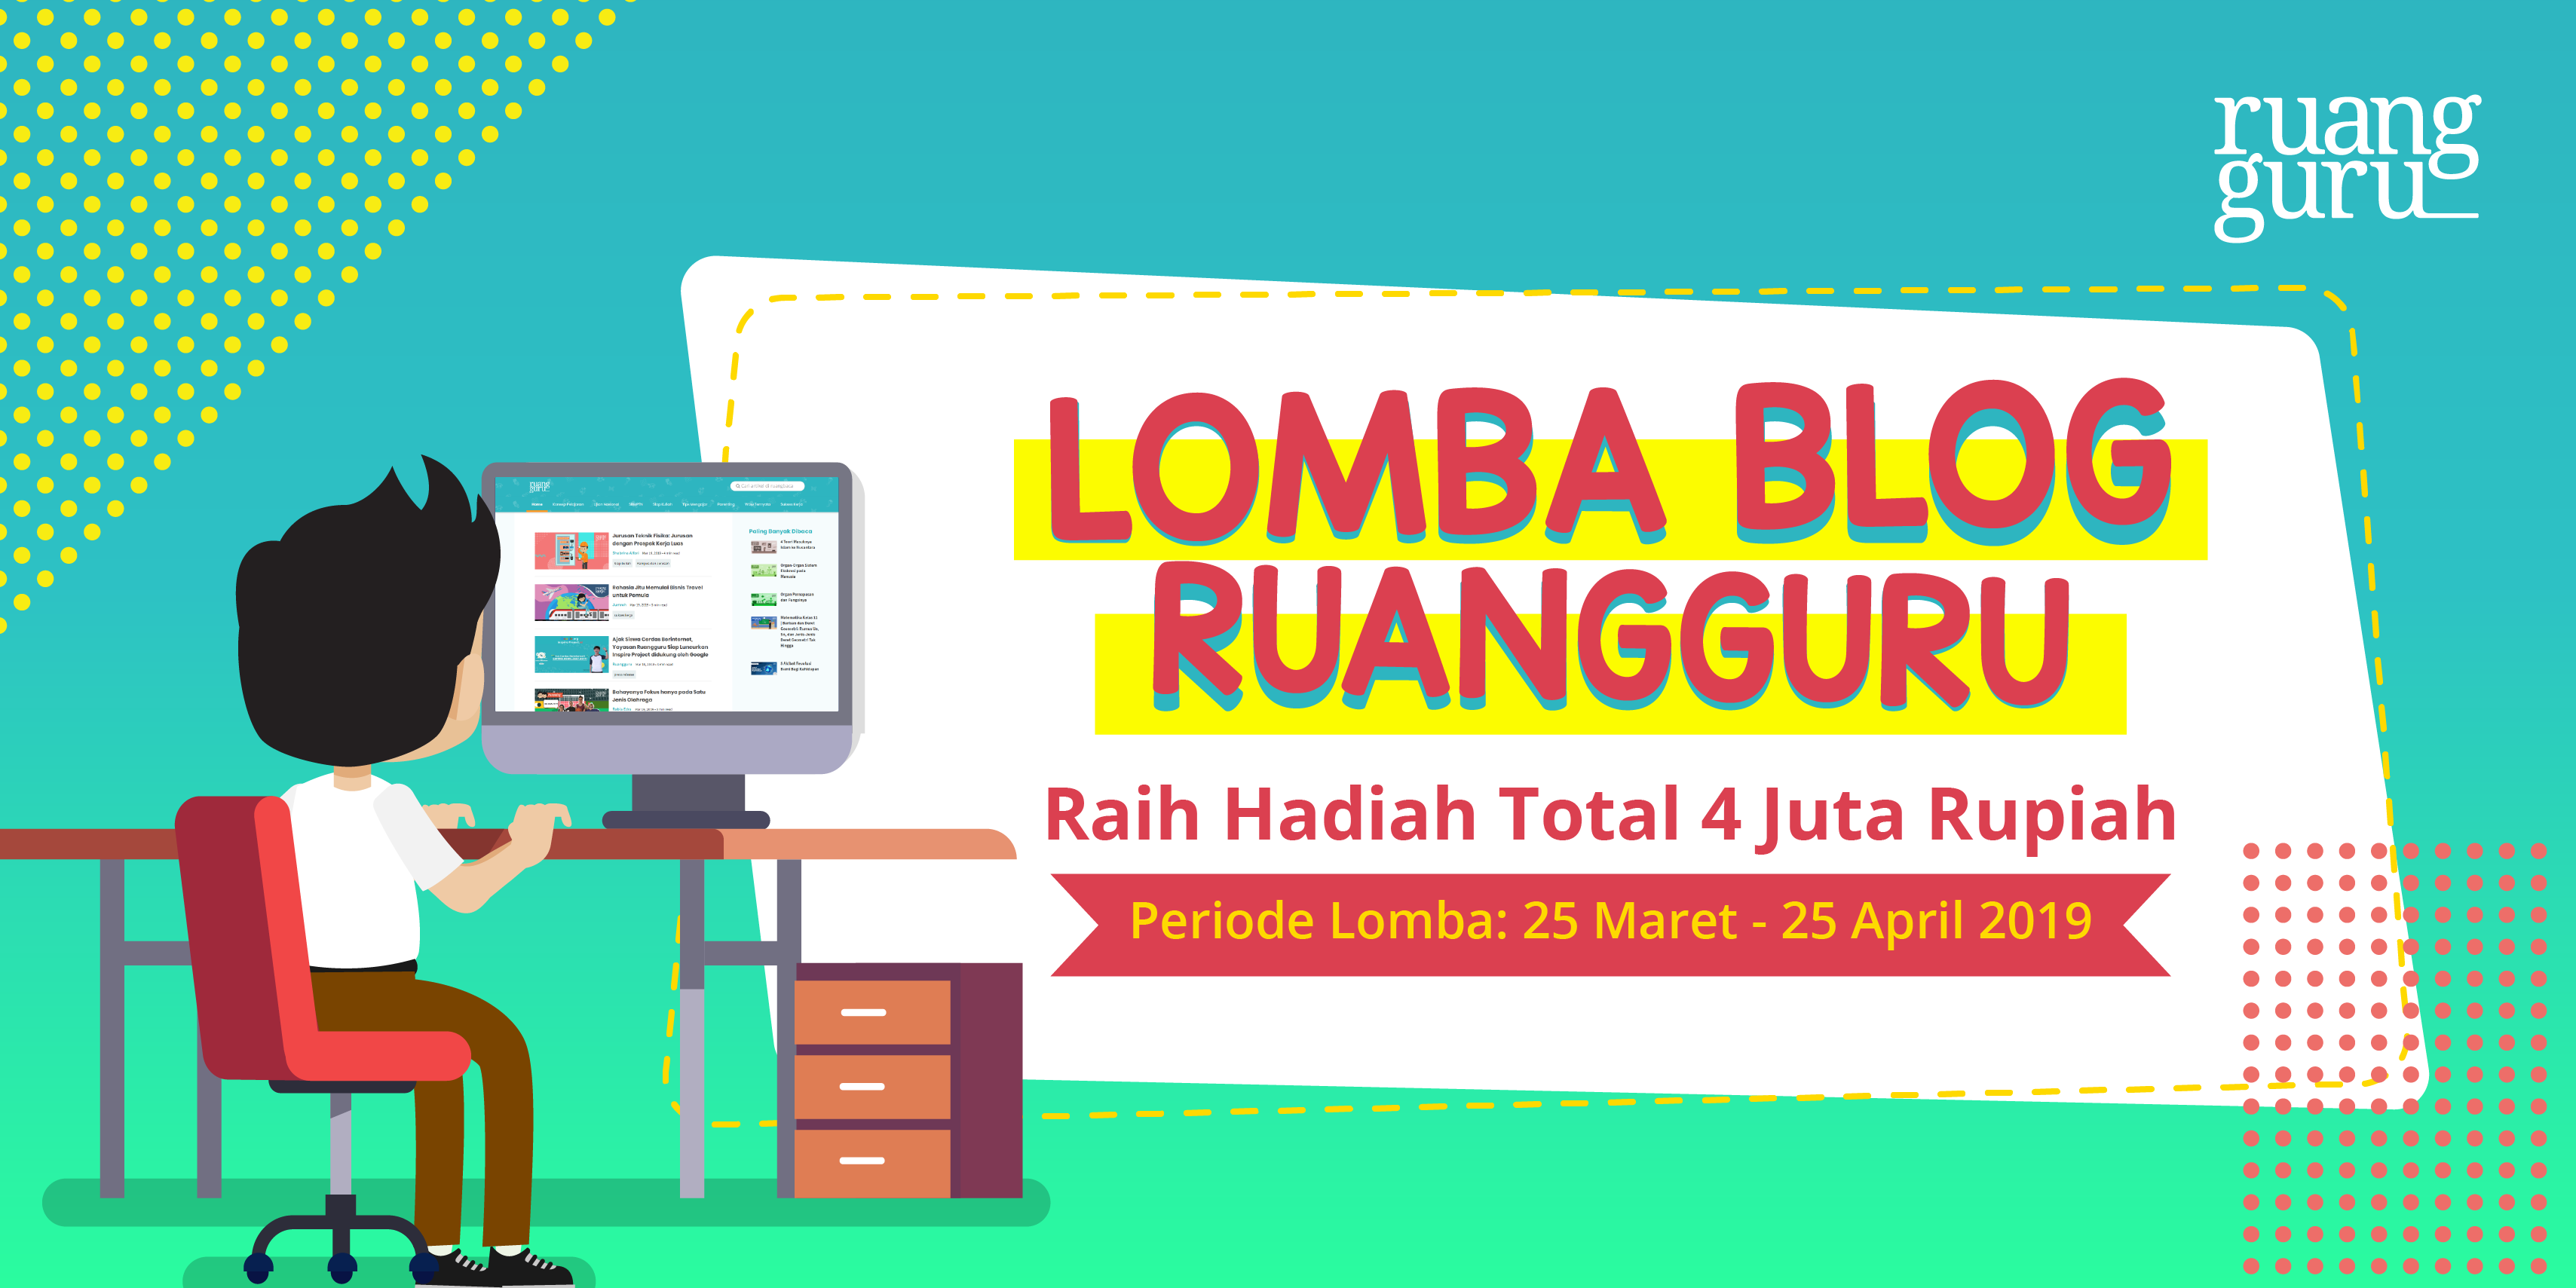 Header - Lomba Blog Ruangguru 2019